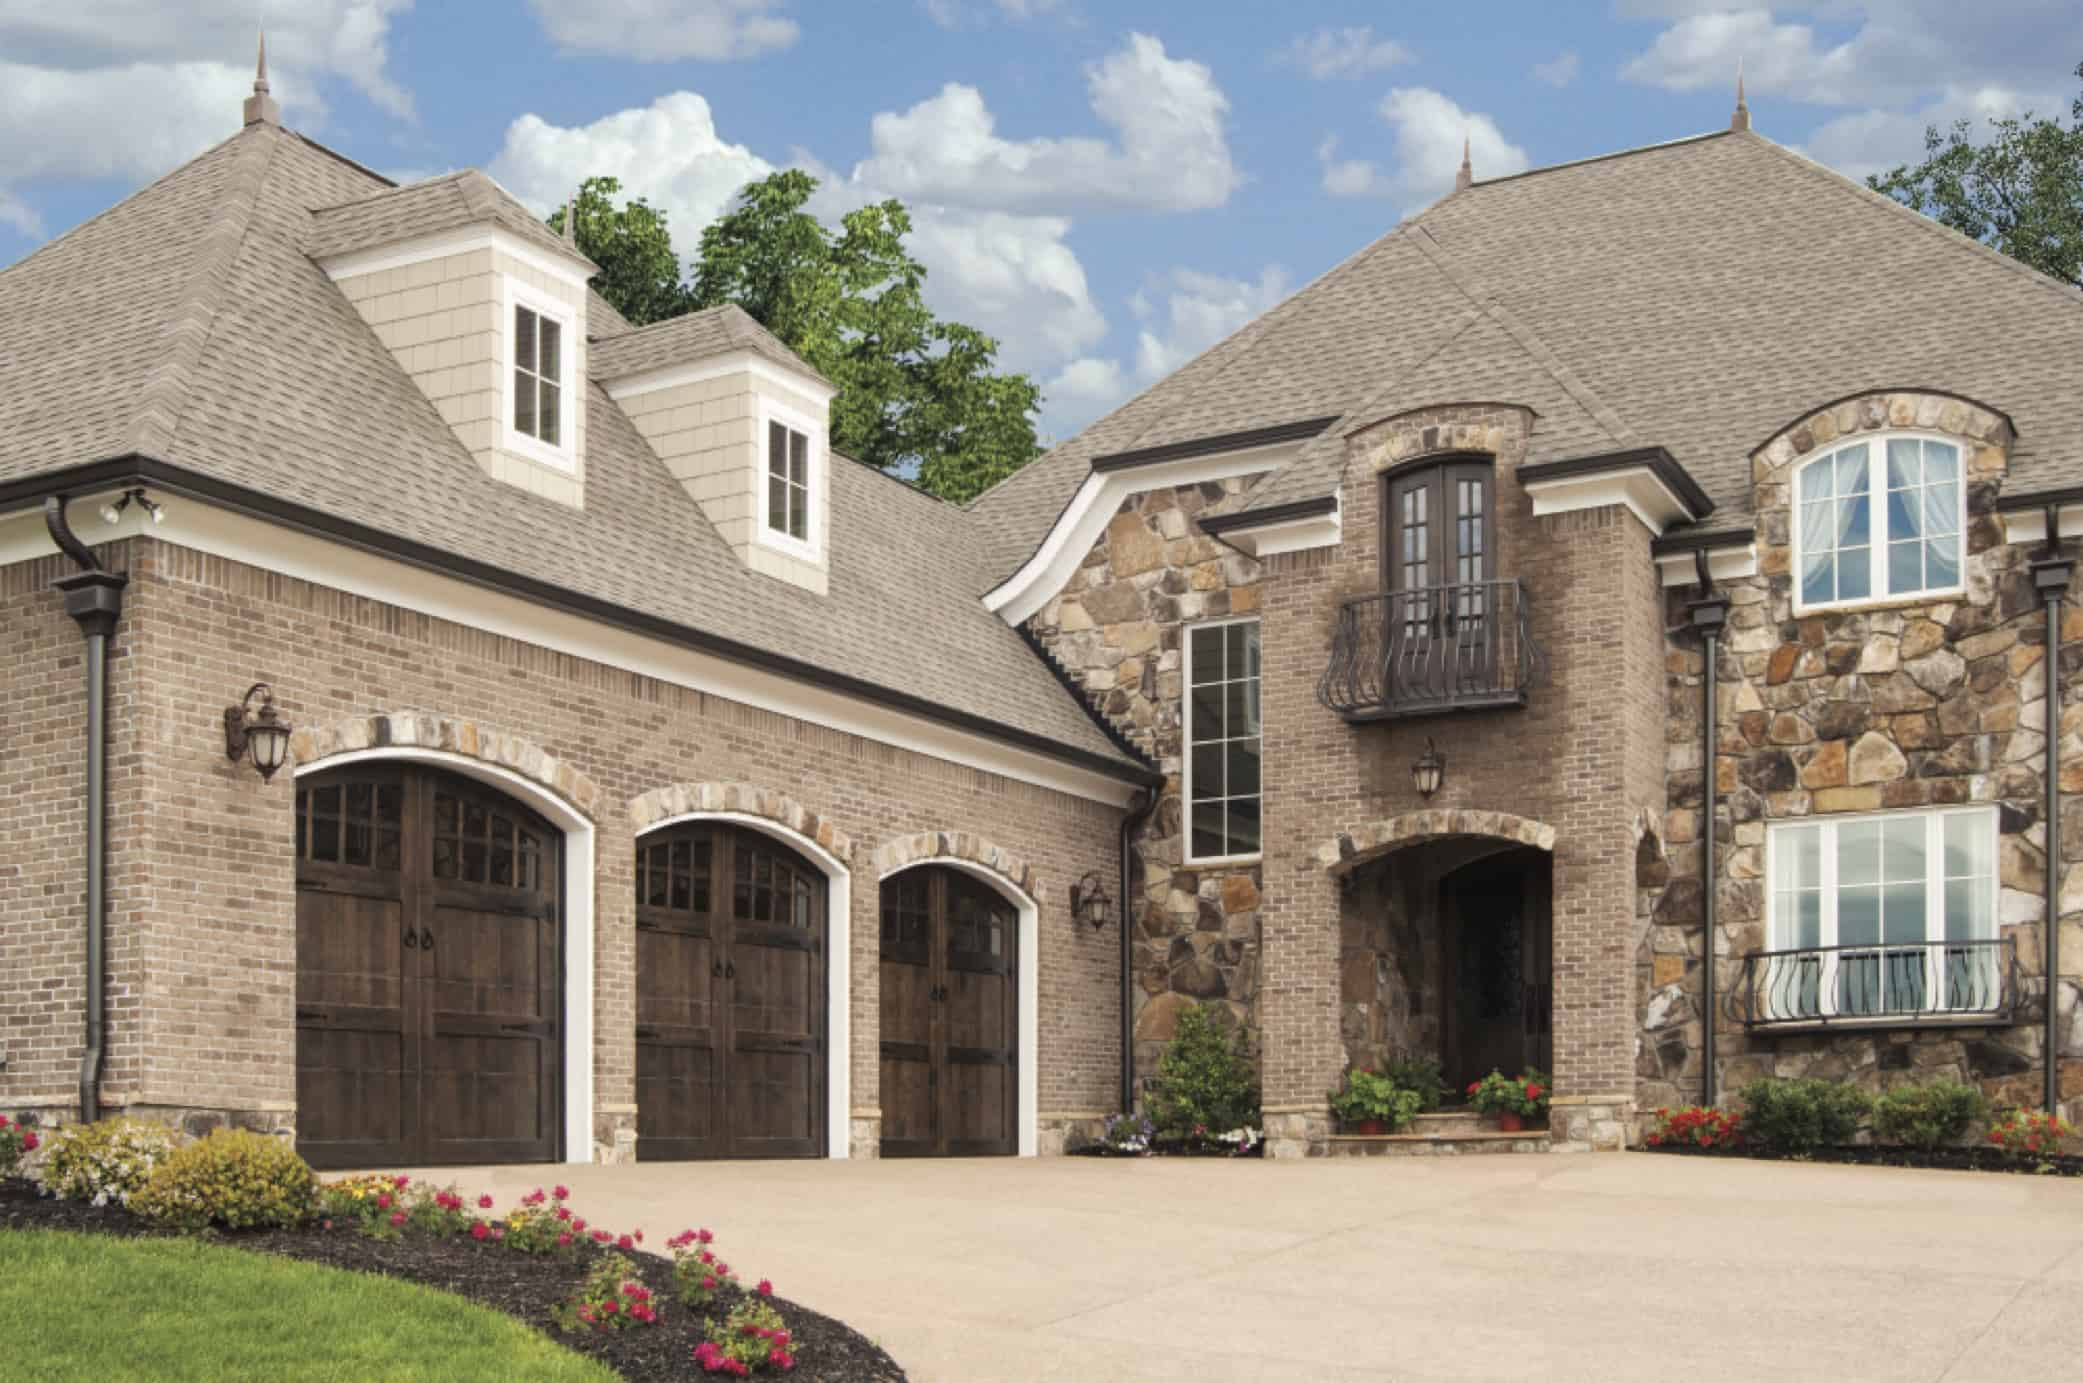 Authentic Carriage House Style Garage Doors By Wayne